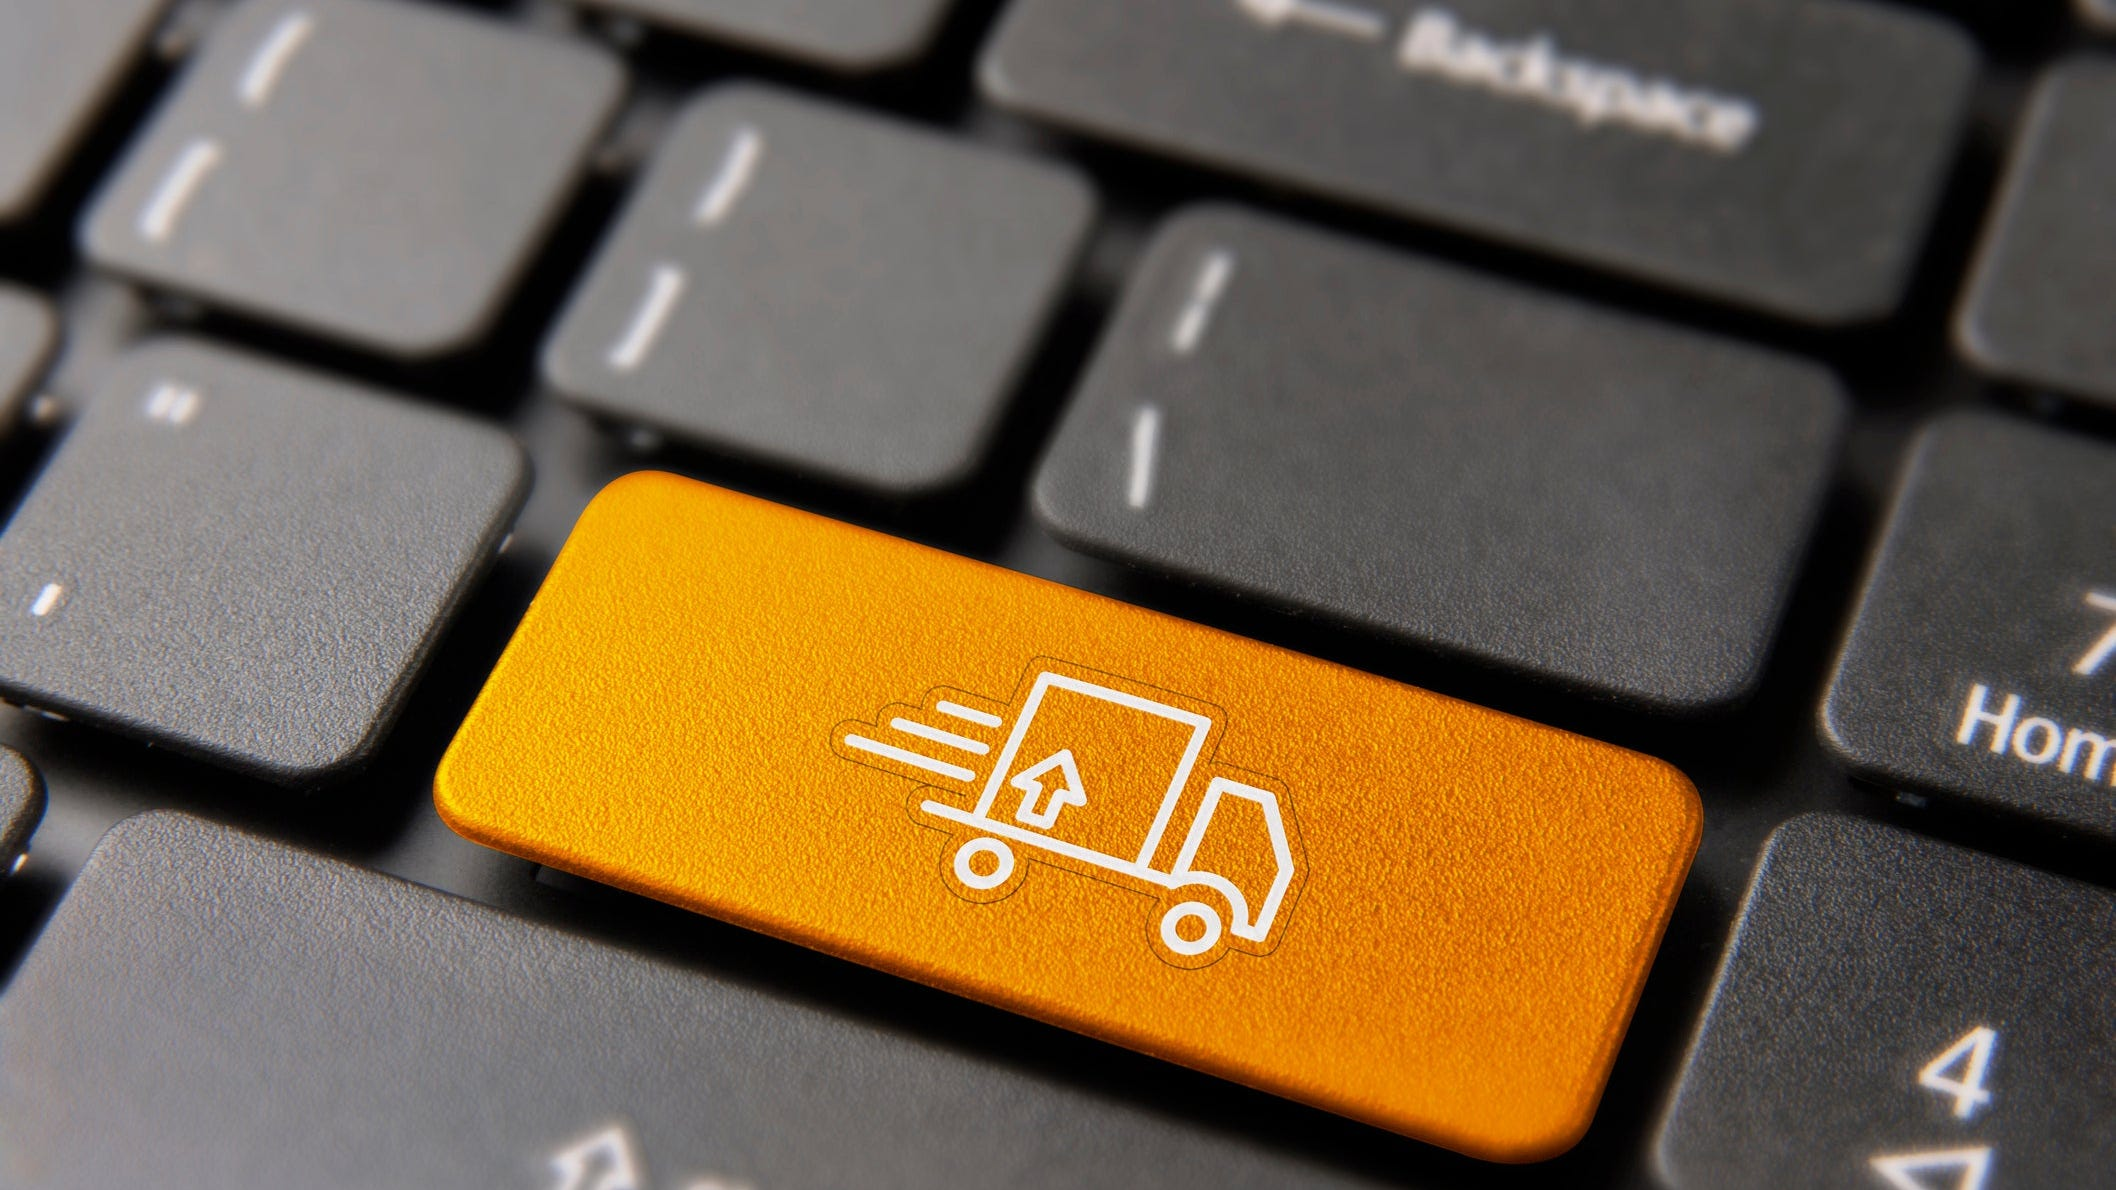 Study: What people are ordering online during coronavirus crisis